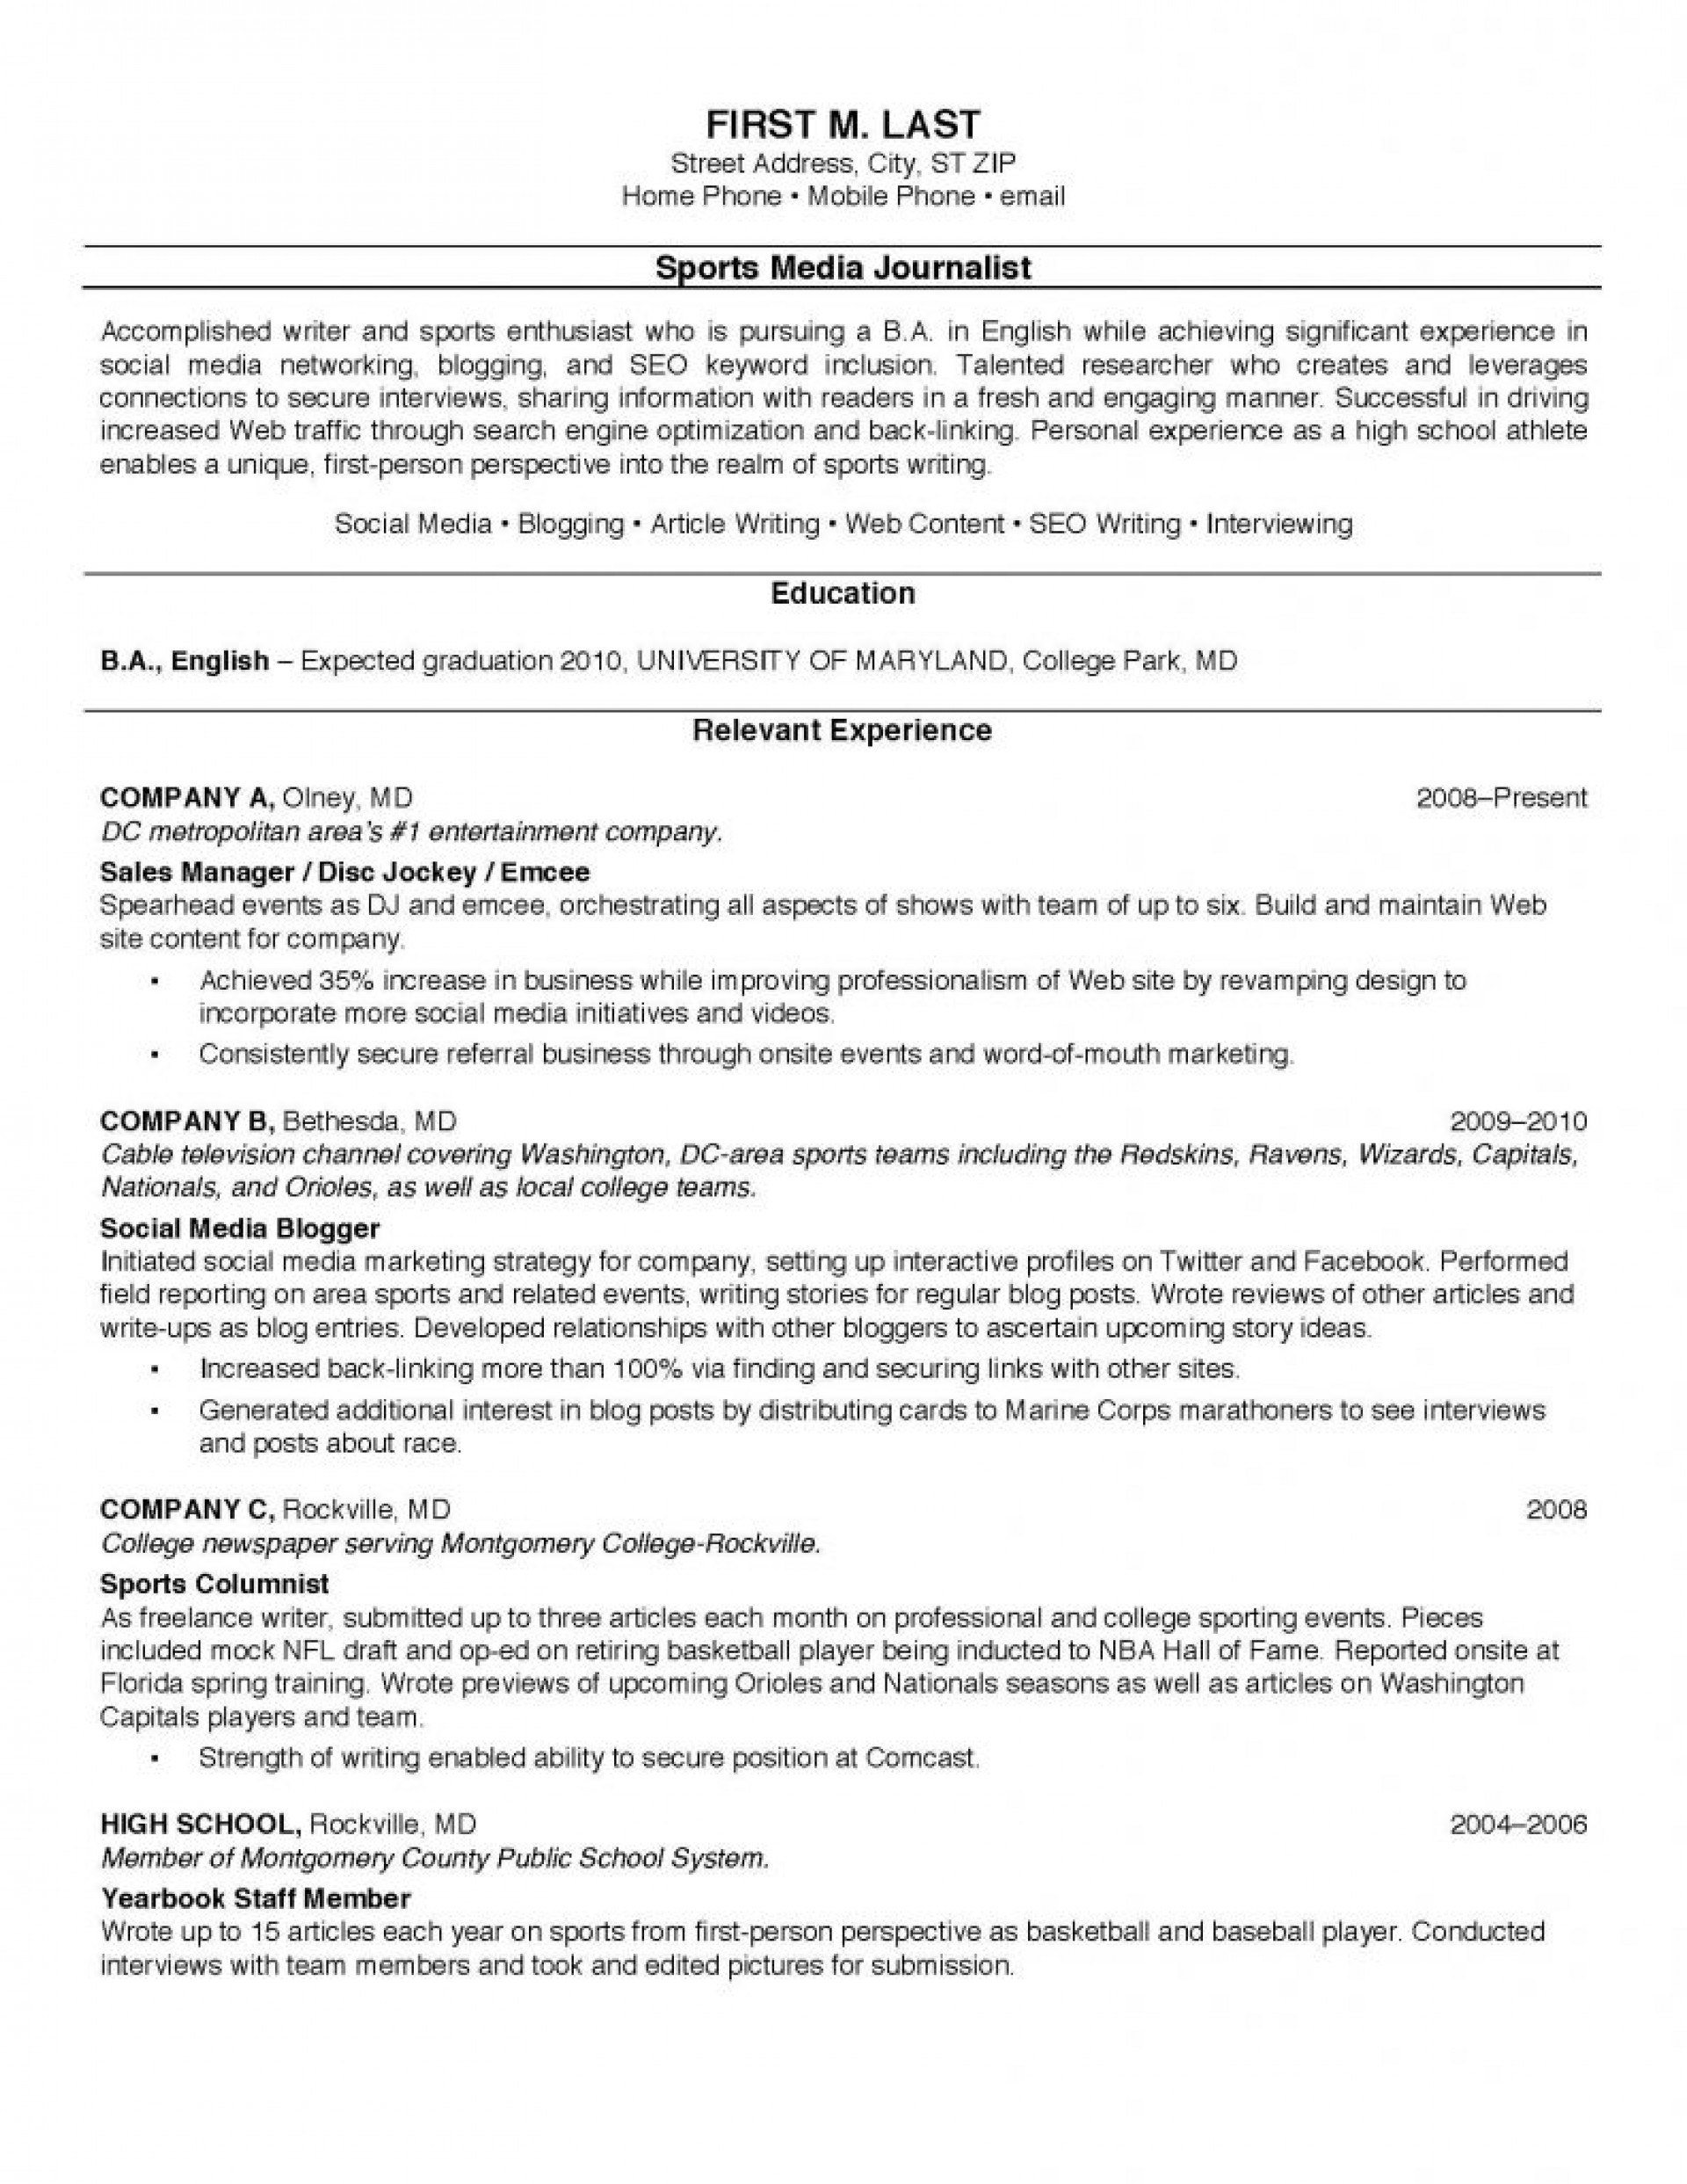 009 Resume Sample For College Students Example Student Template Http Of 791x1024 Descriptive Essay Exceptional Topics Writing Ibps Po Mains High School Prompts 1920